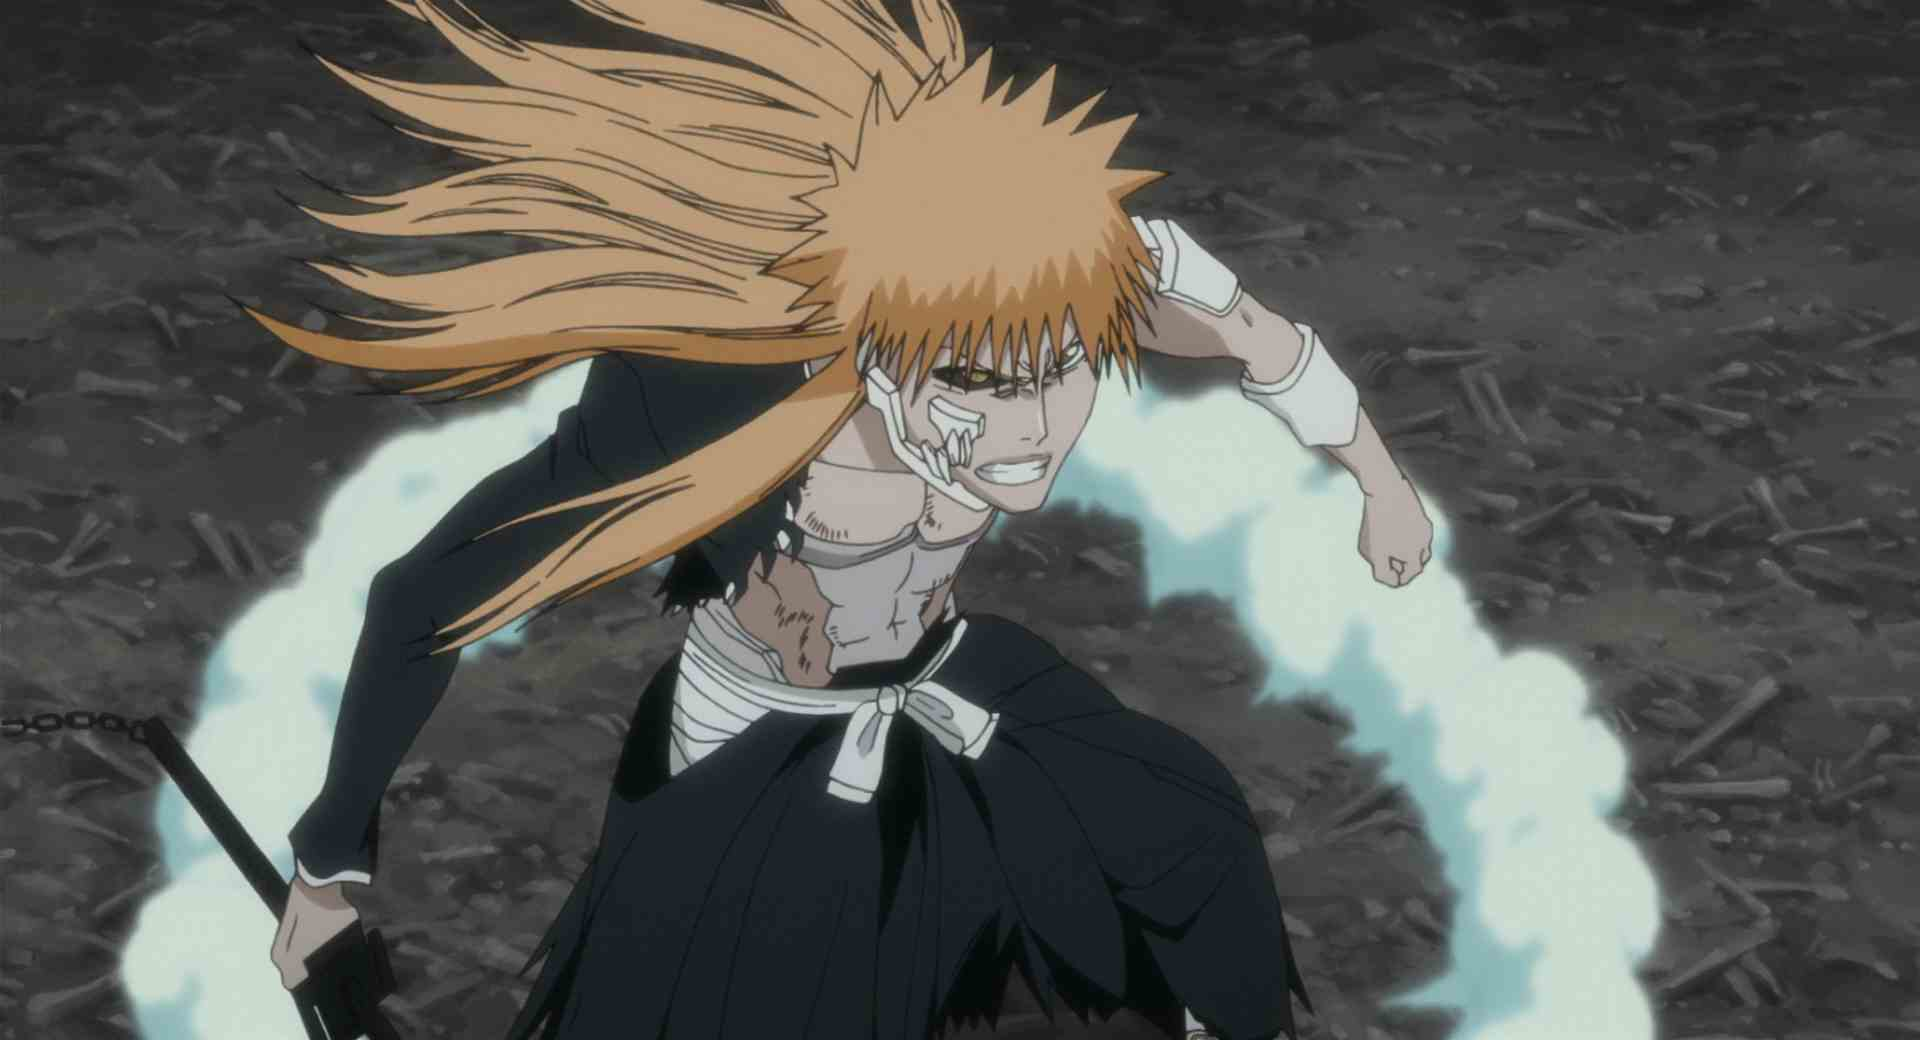 Play《[720p]BLEACH 地獄篇 0.99GB》